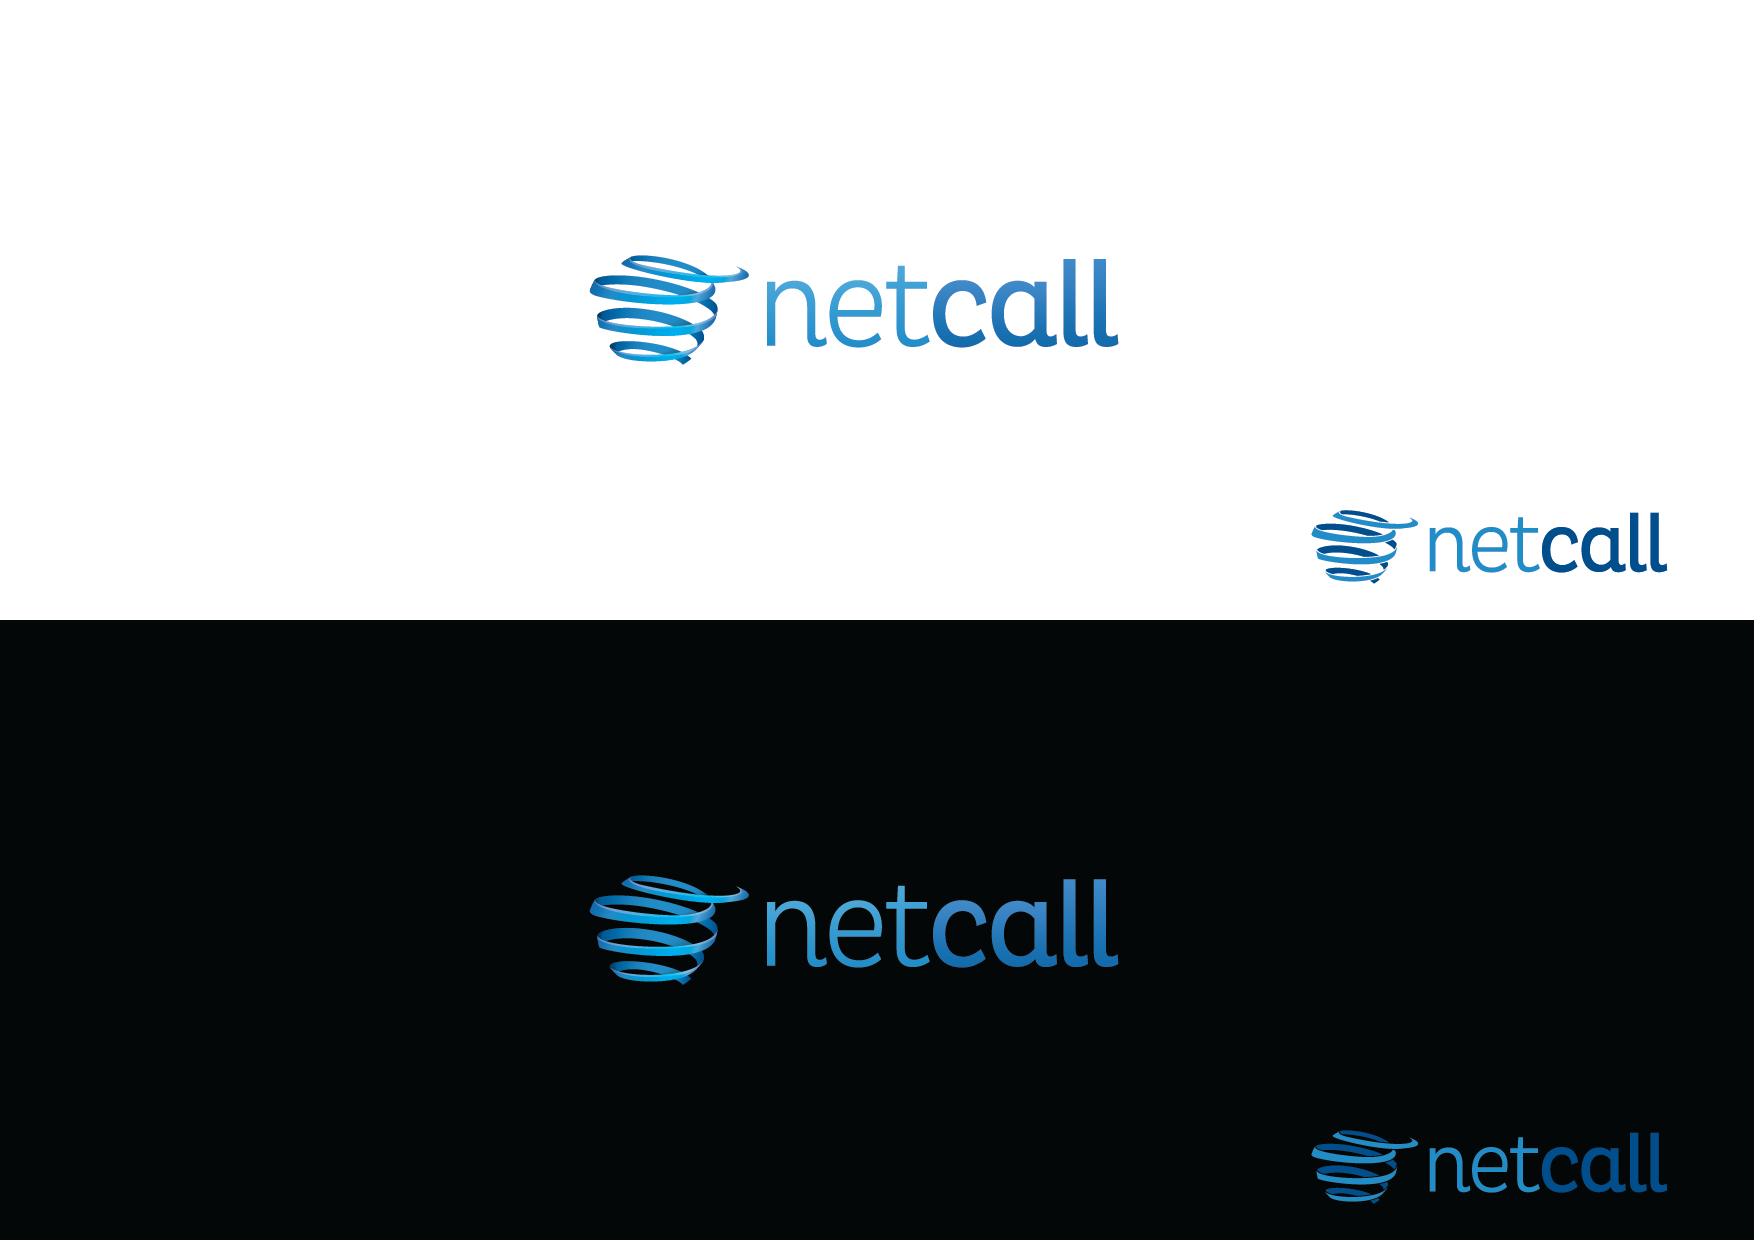 New logo wanted for social voice network, Netcall